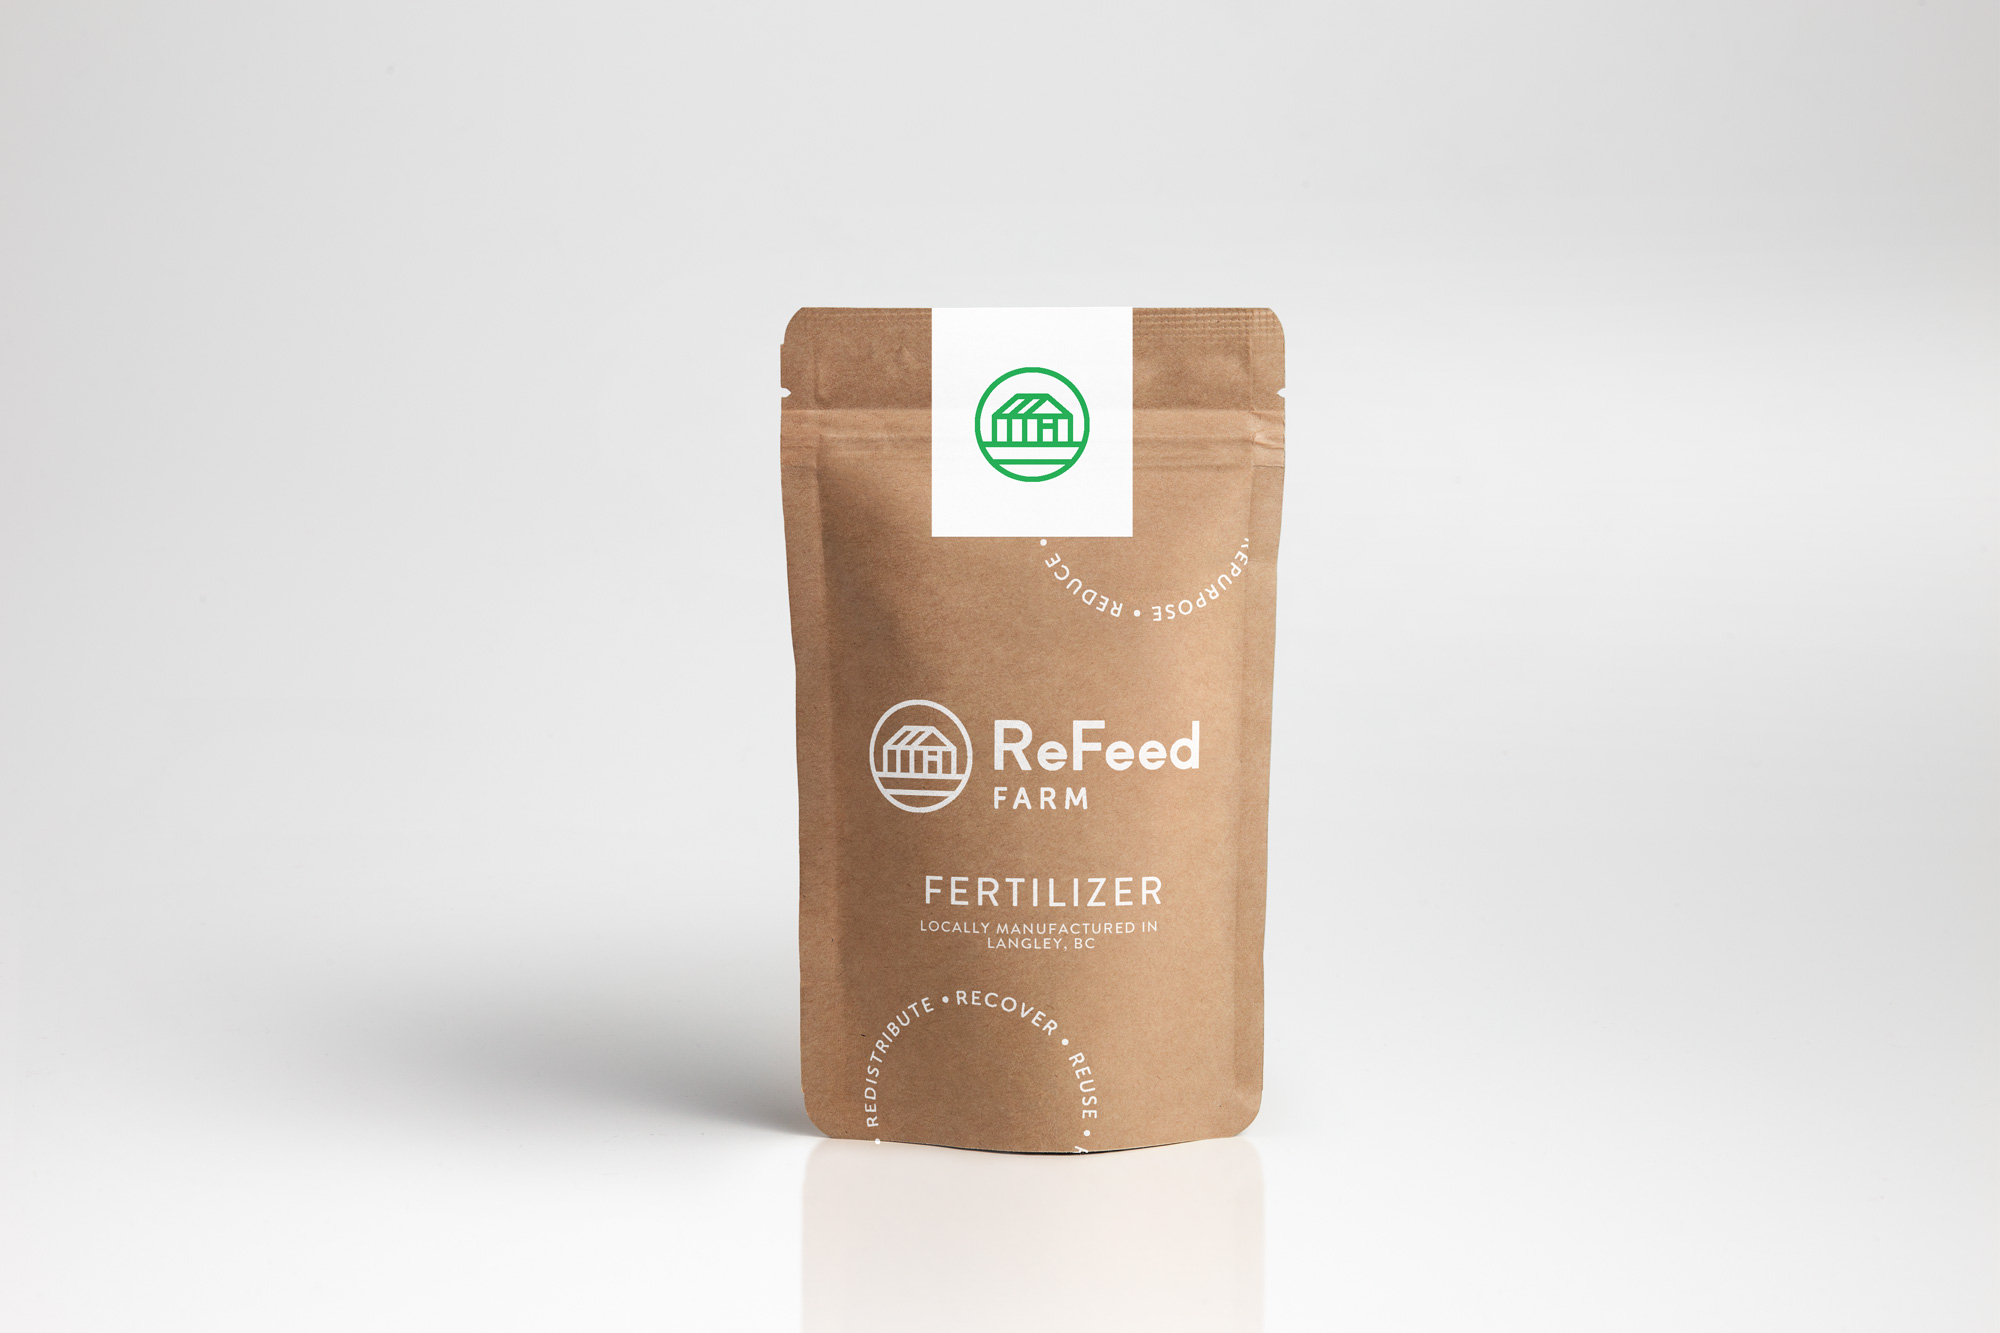 ReFeed_Paper-Pouch-Mockup_R1_v2